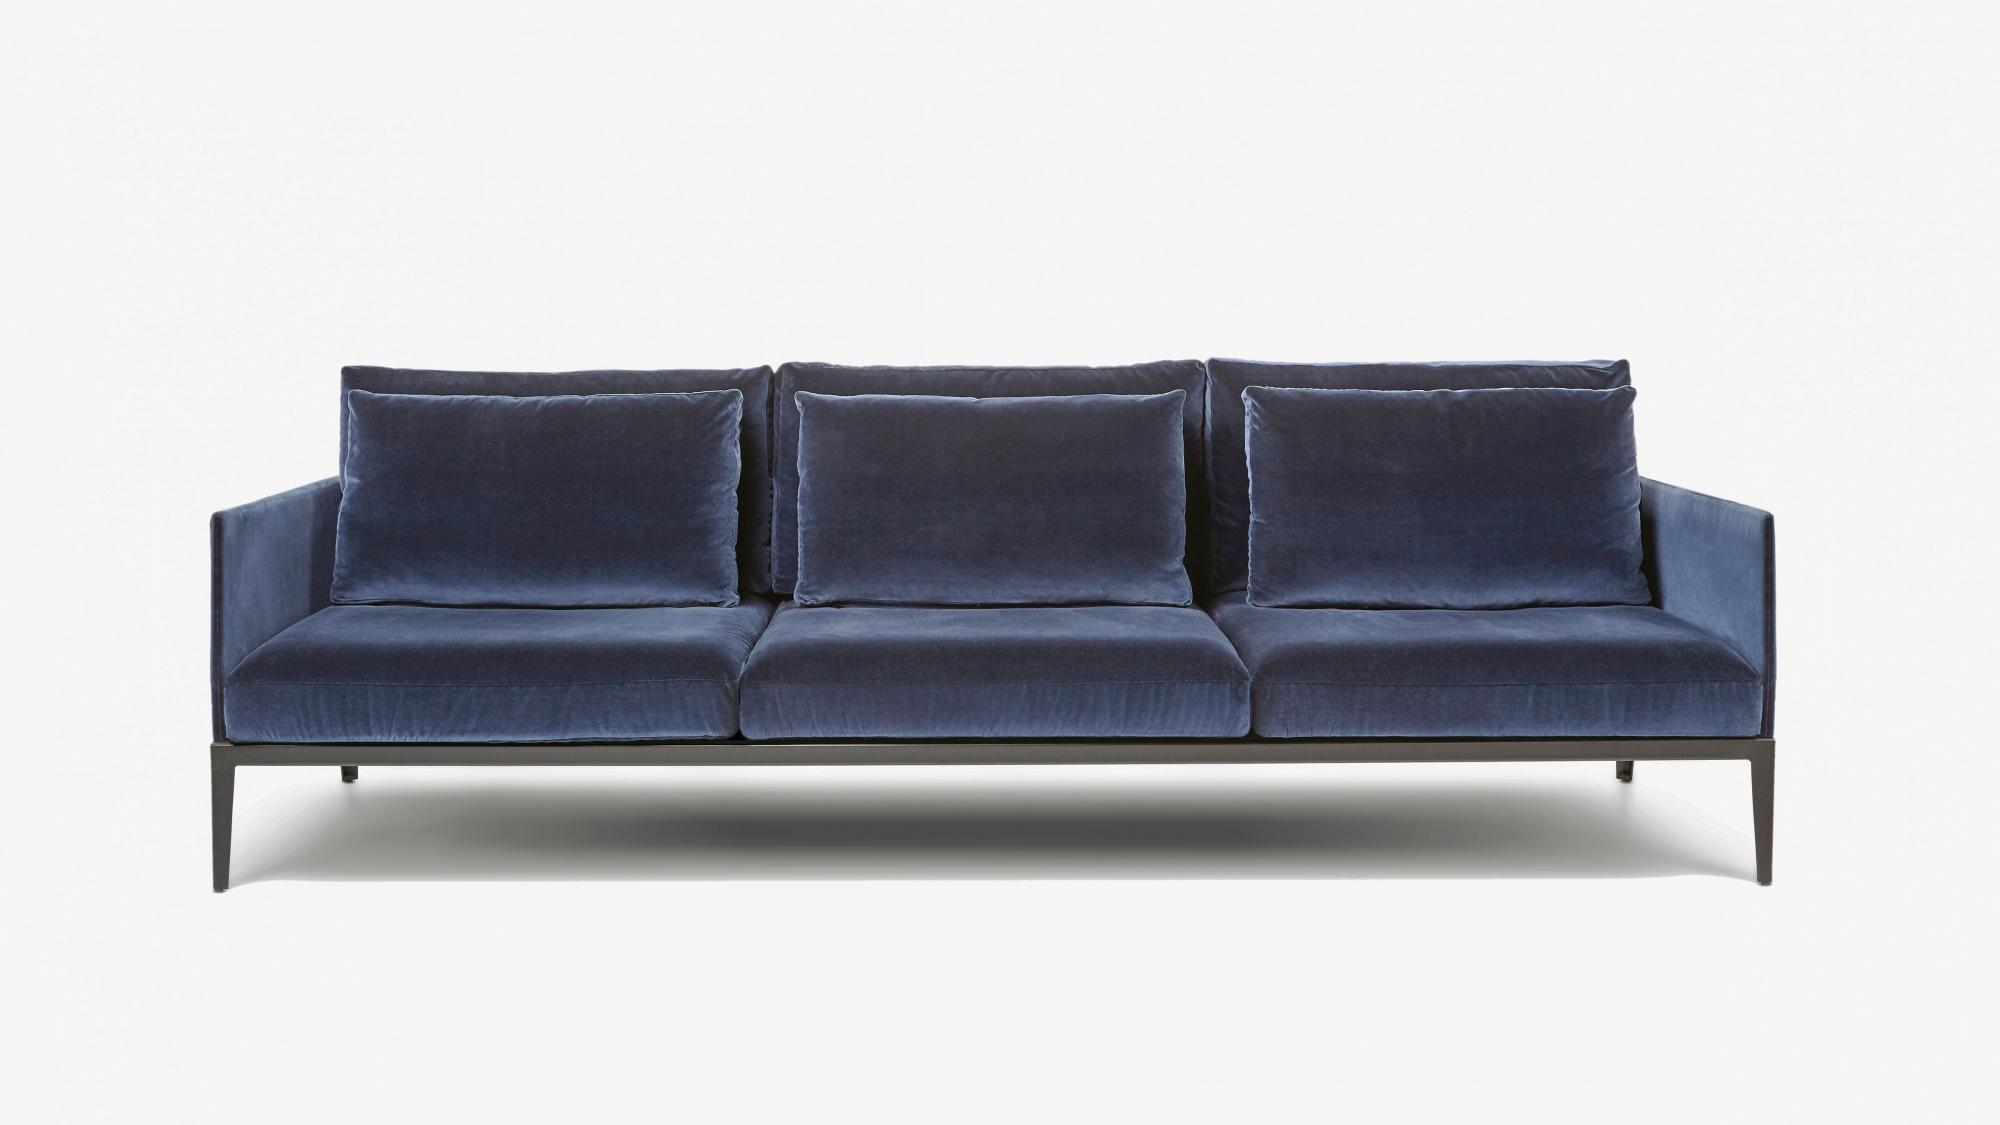 Liaison Sofa from District